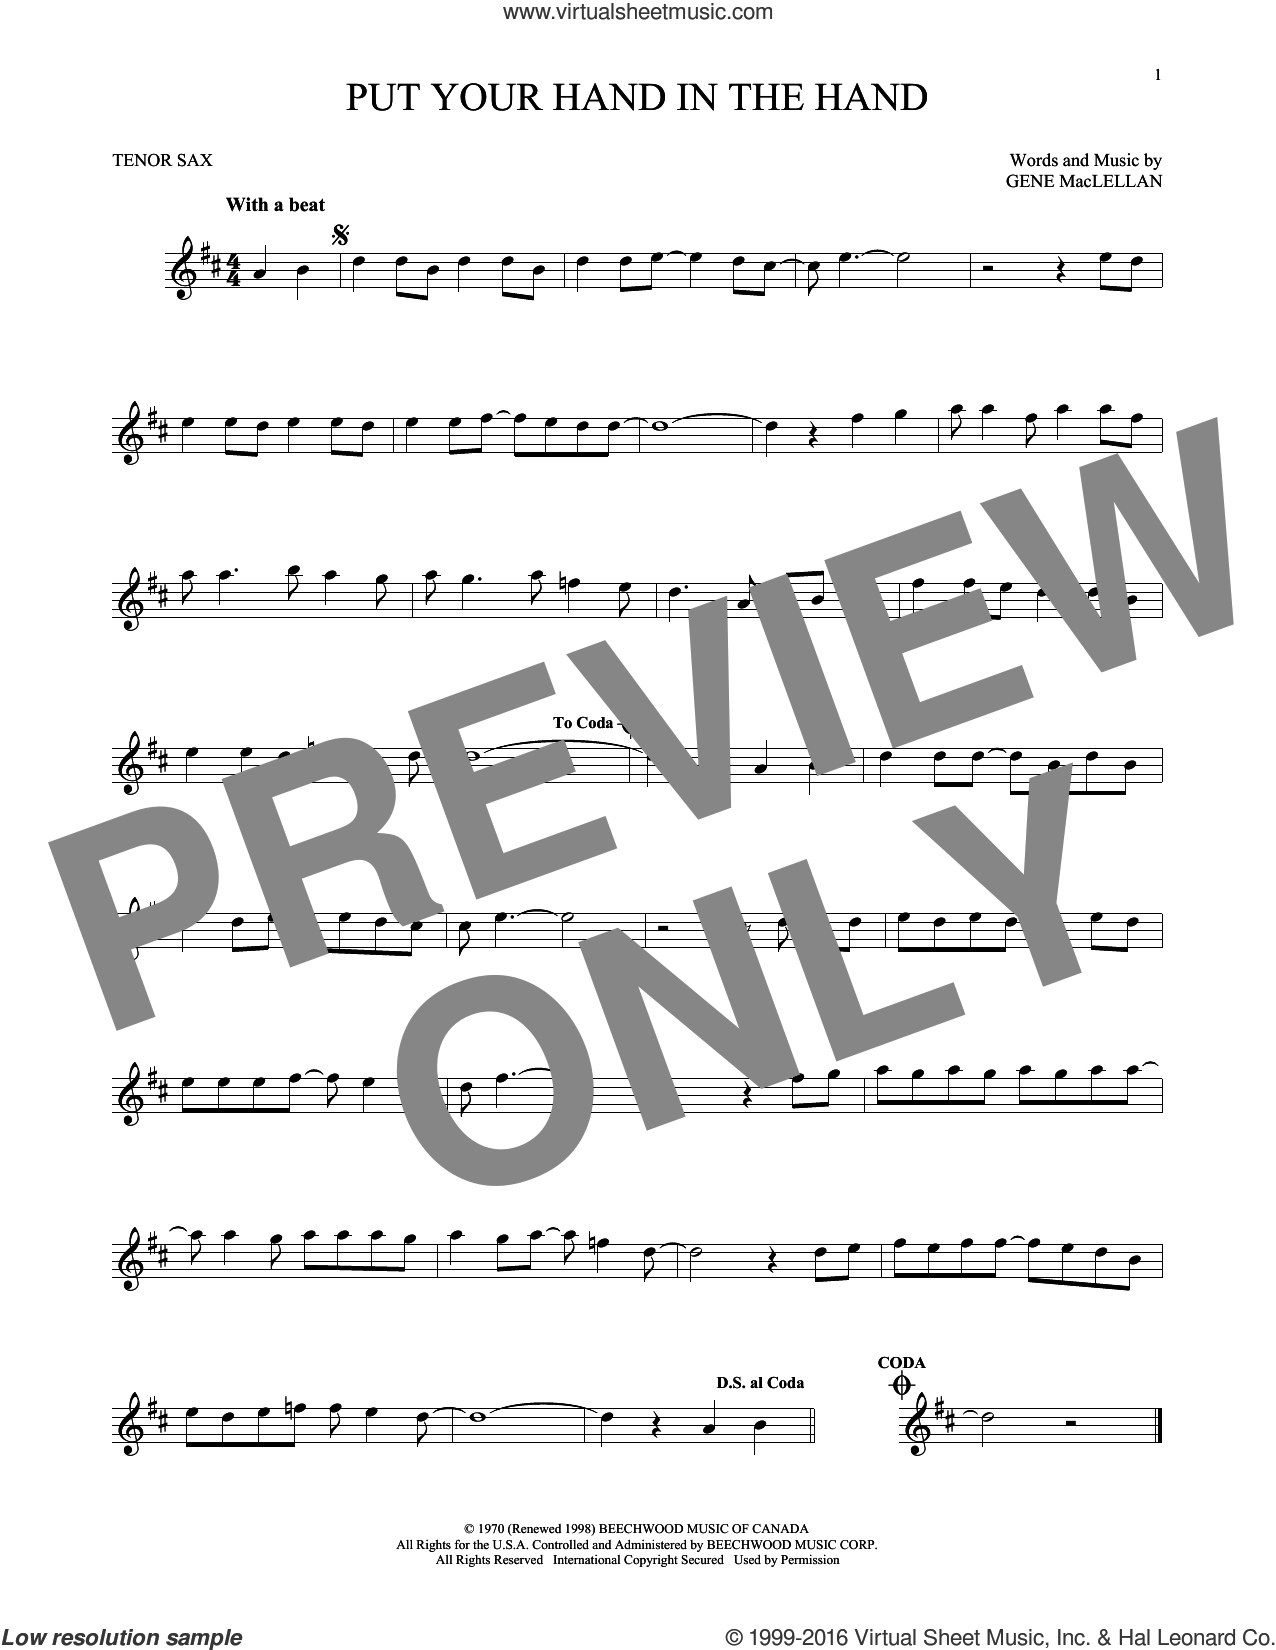 Put Your Hand In The Hand sheet music for tenor saxophone solo by MacLellan and Ocean and Gene MacLellan, intermediate skill level